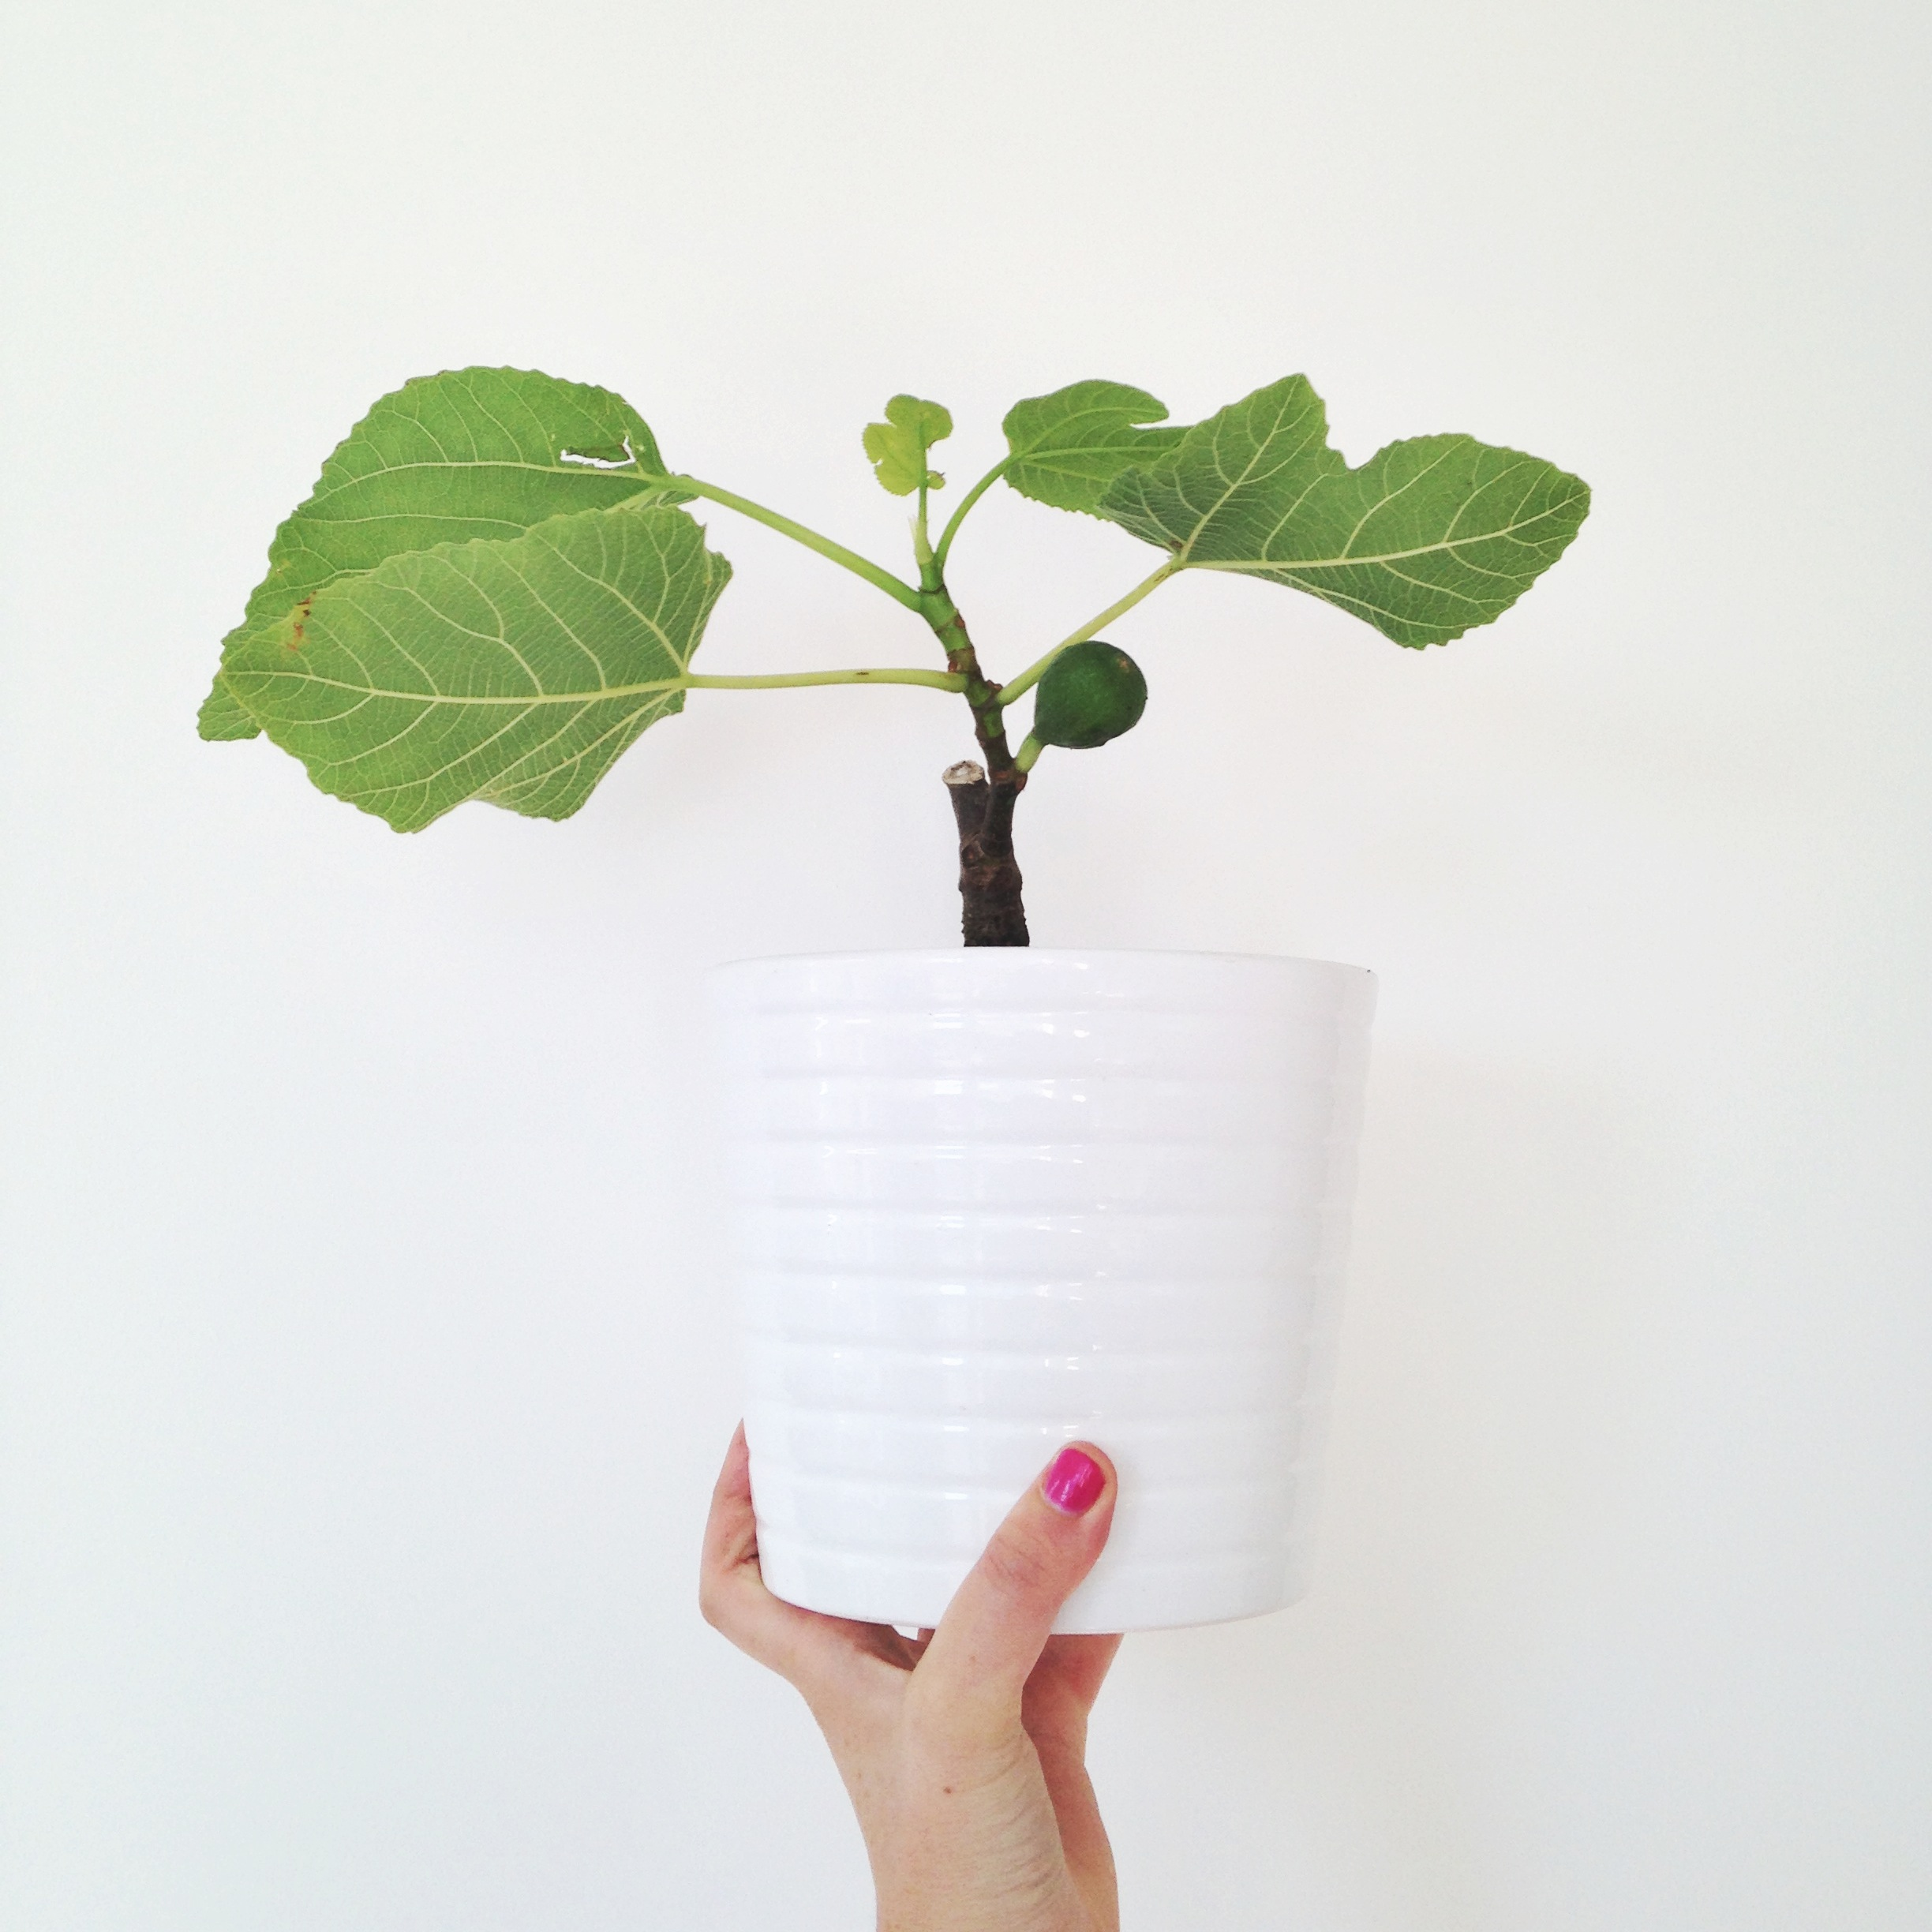 1//. this little figgy - because I have dreams of a big Pinterst-worthy fiddle leaf fig tree in my lounge!